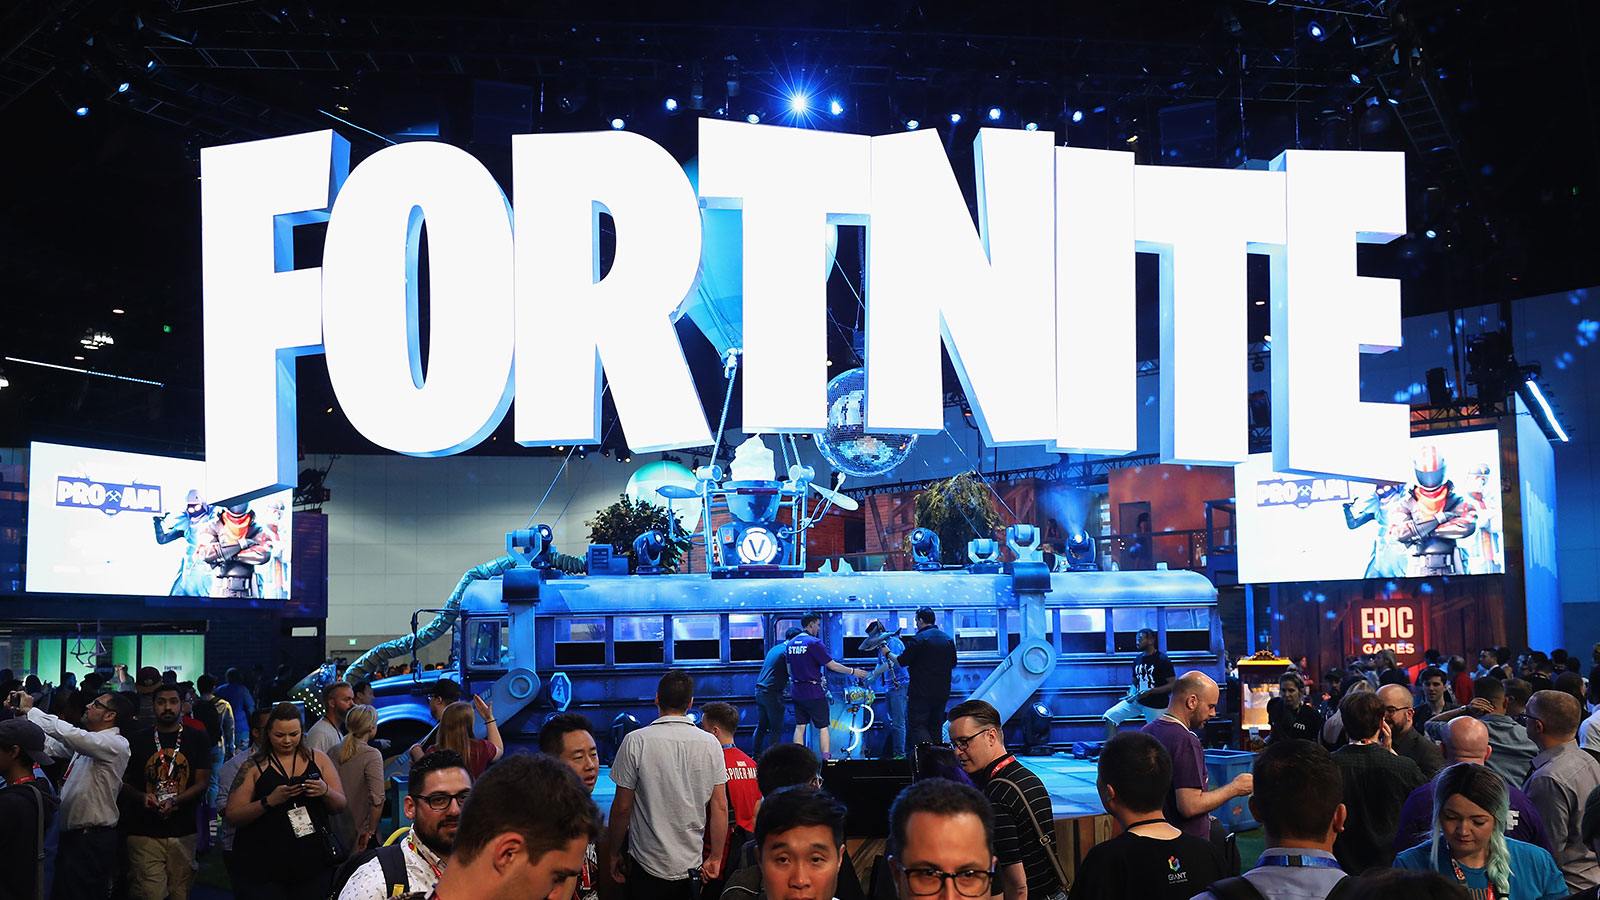 Noob or Not? How Much Do You Know About Fortnite? | HowStuffWorks